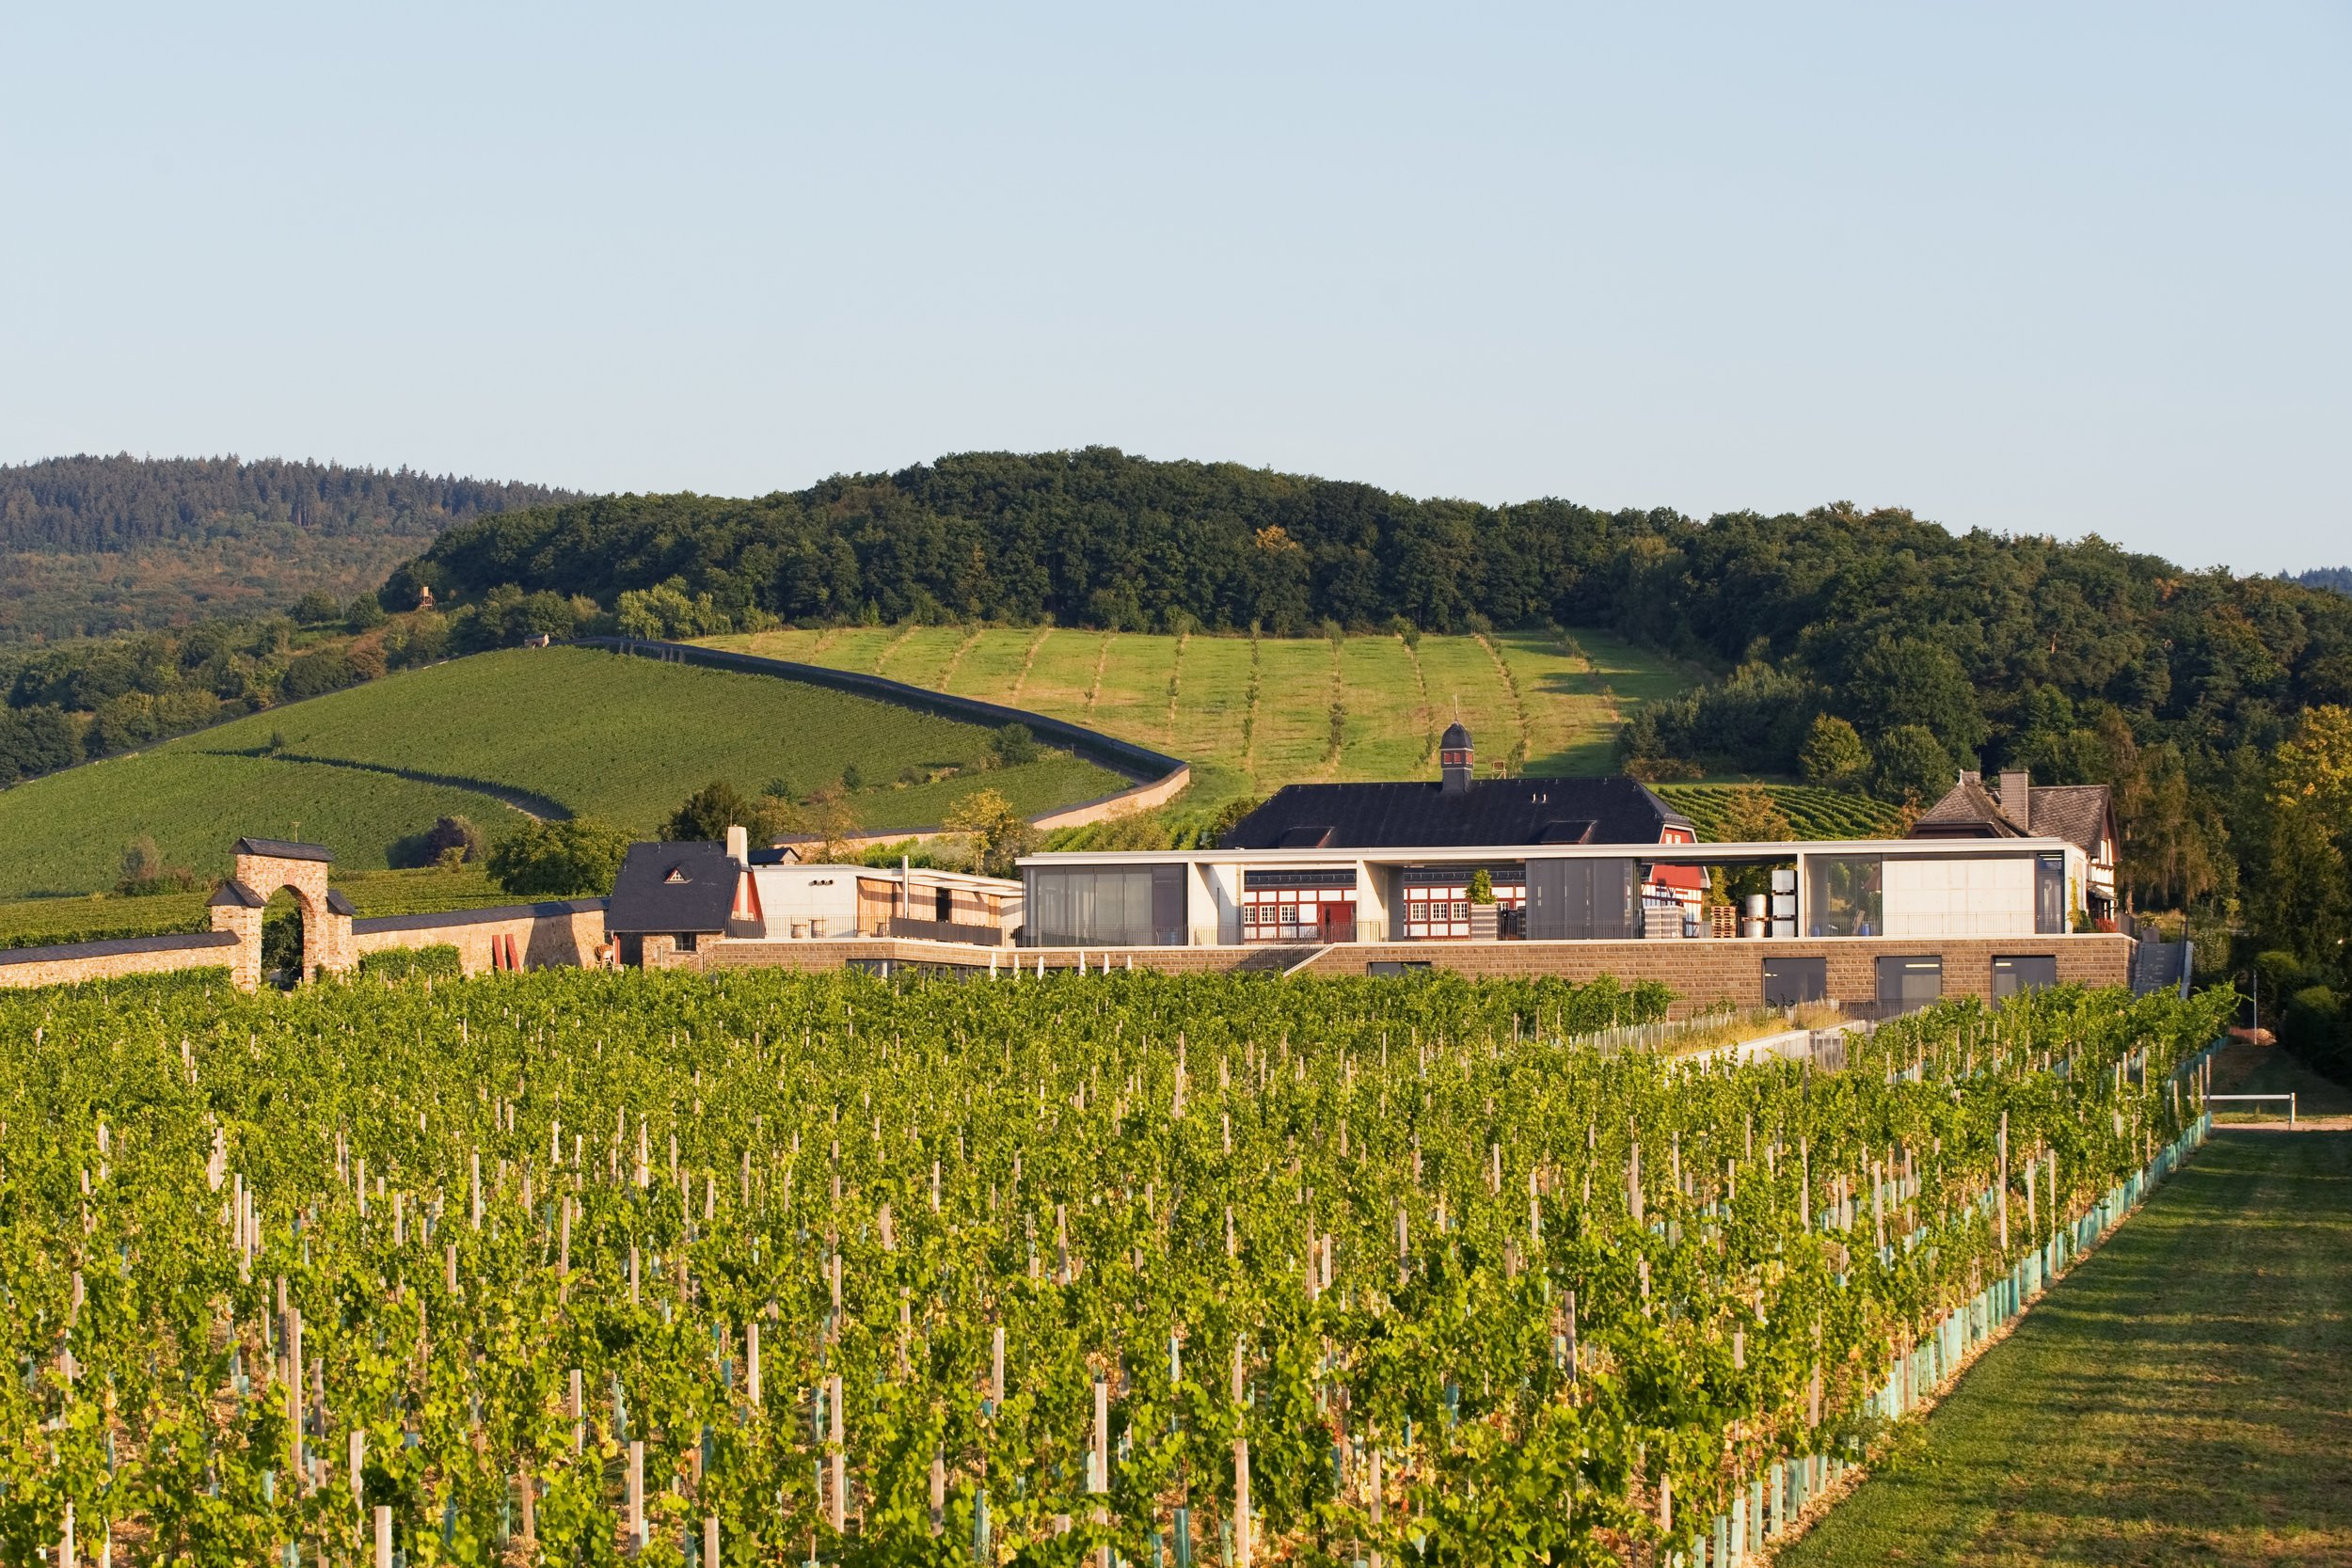 Hattenheimer Steinberg - Surrounded by an approximately 3km long & 4m high wall to prevent the grapes from the infiltration of cold air, the vineyard is exclusively planted with Riesling vines, from which top wines are produced, such as the legendary Steinberger Riesling Trockenbeerenauslese 1921. The domain Steinberg, which belongs to the Hessian state wineries Kloster Eberbach, is 34 hectares large and one of the most prestigious vineyards at the monastery.